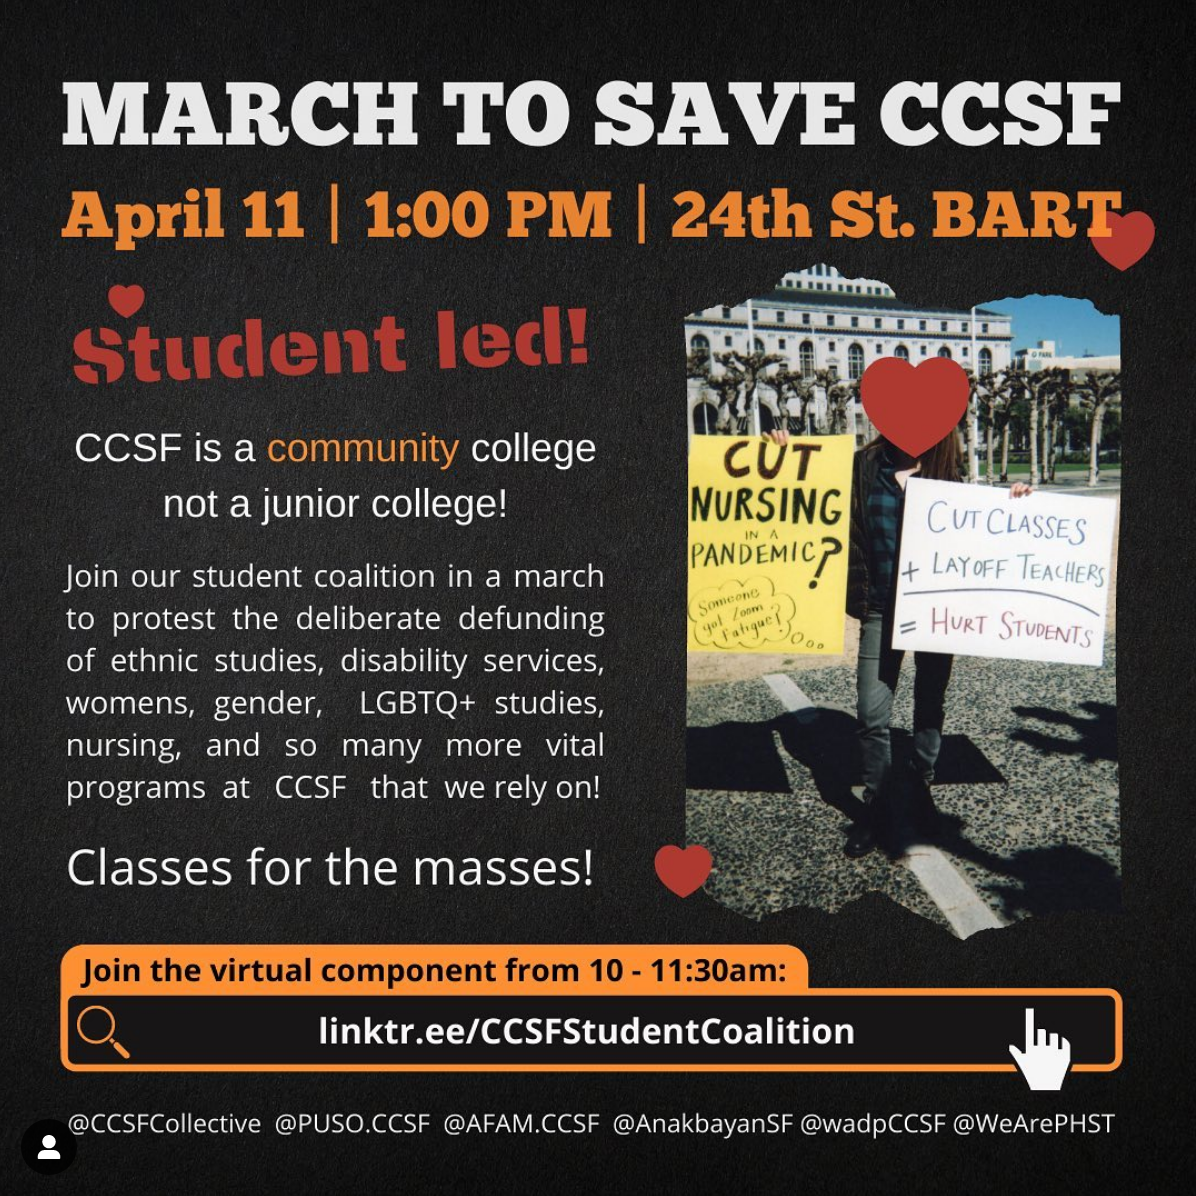 Student-led webinar and rally to save CCSF @ 24th Street BART